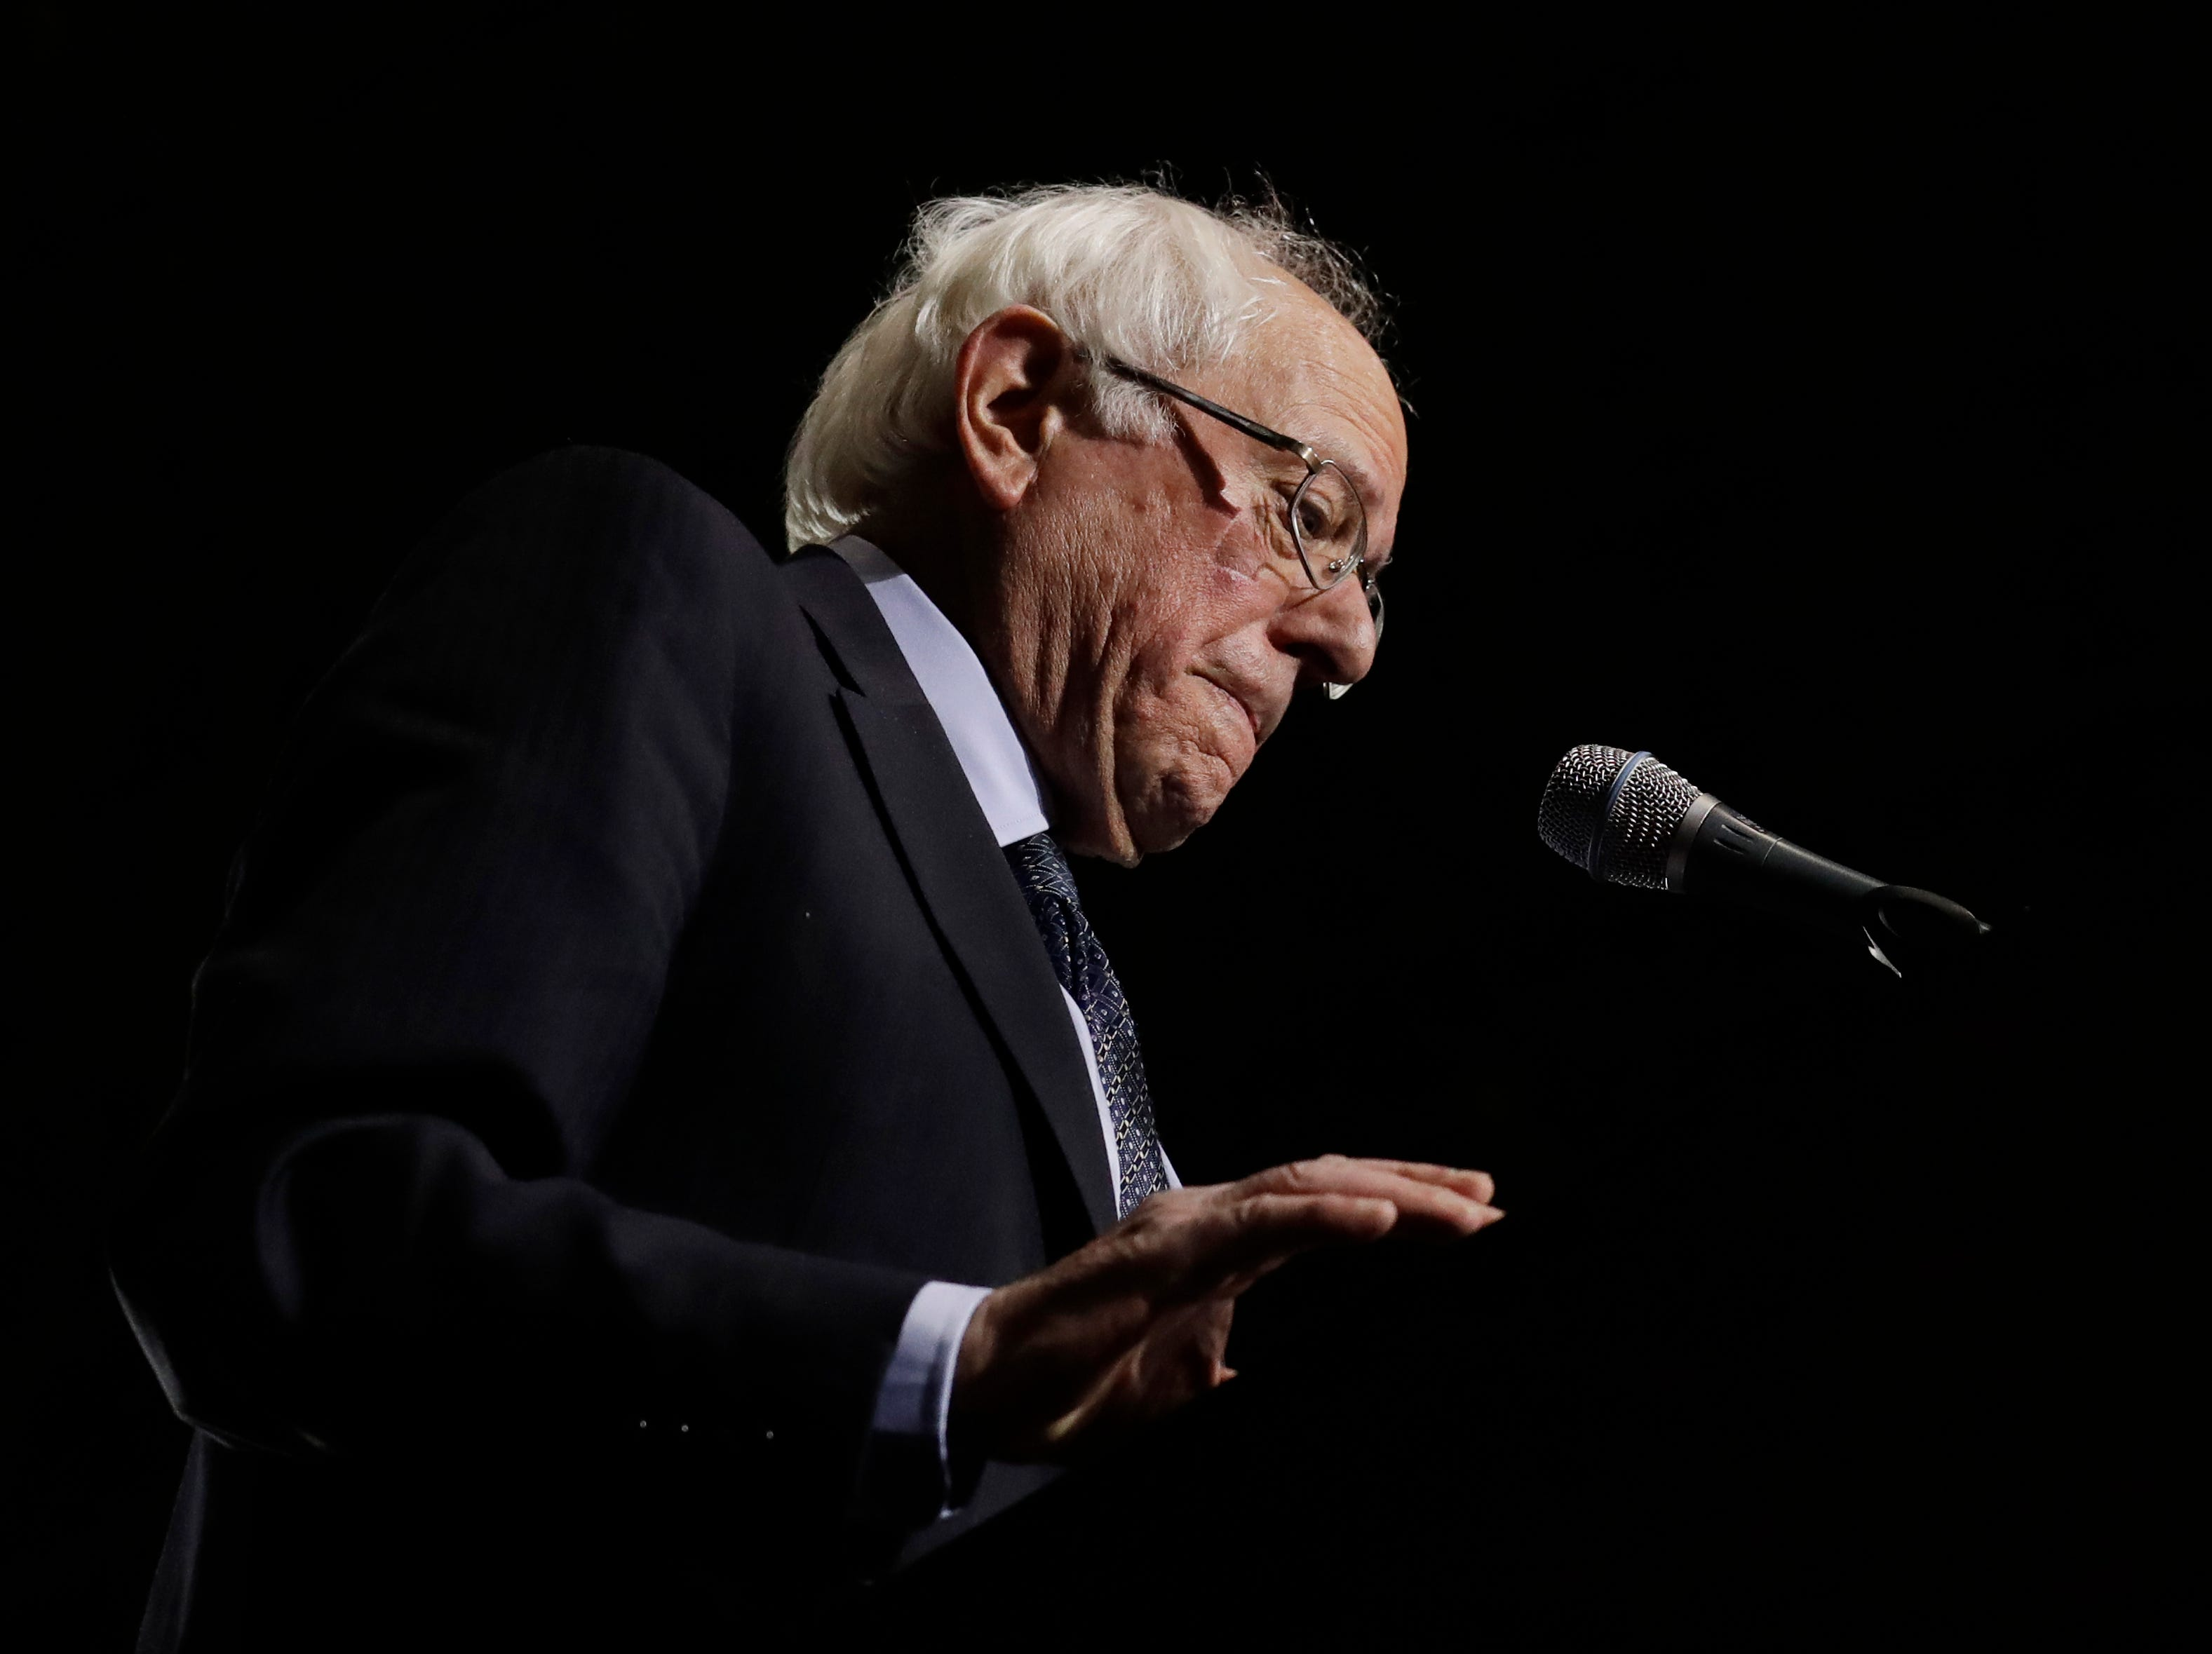 Sen. Bernie Sanders, I-Vt., speaks as he kicks off his 2020 presidential campaign at Navy Pier in Chicago, Sunday, March 3, 2019. Over the next several weeks, Sanders will travel to Iowa, New Hampshire, South Carolina, Nevada, and California. He will then return to Burlington, Vermont, for the official launch of his campaign.